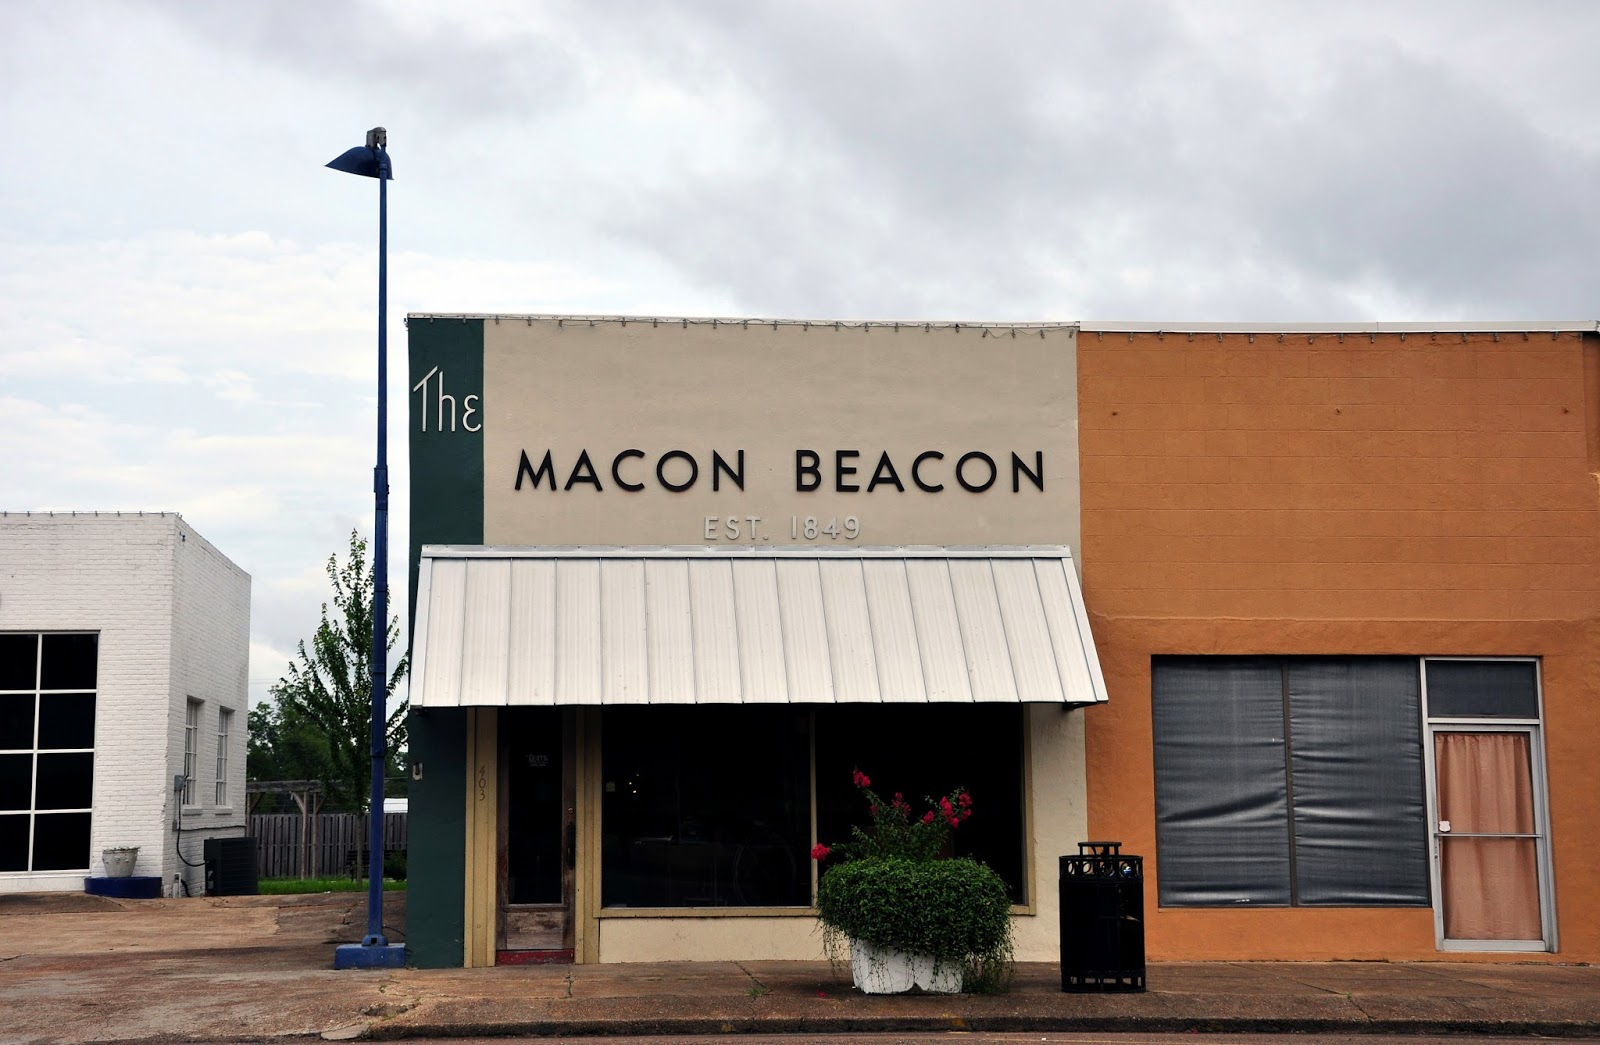 The Macon Beacon @ Hickory Ridge Studio